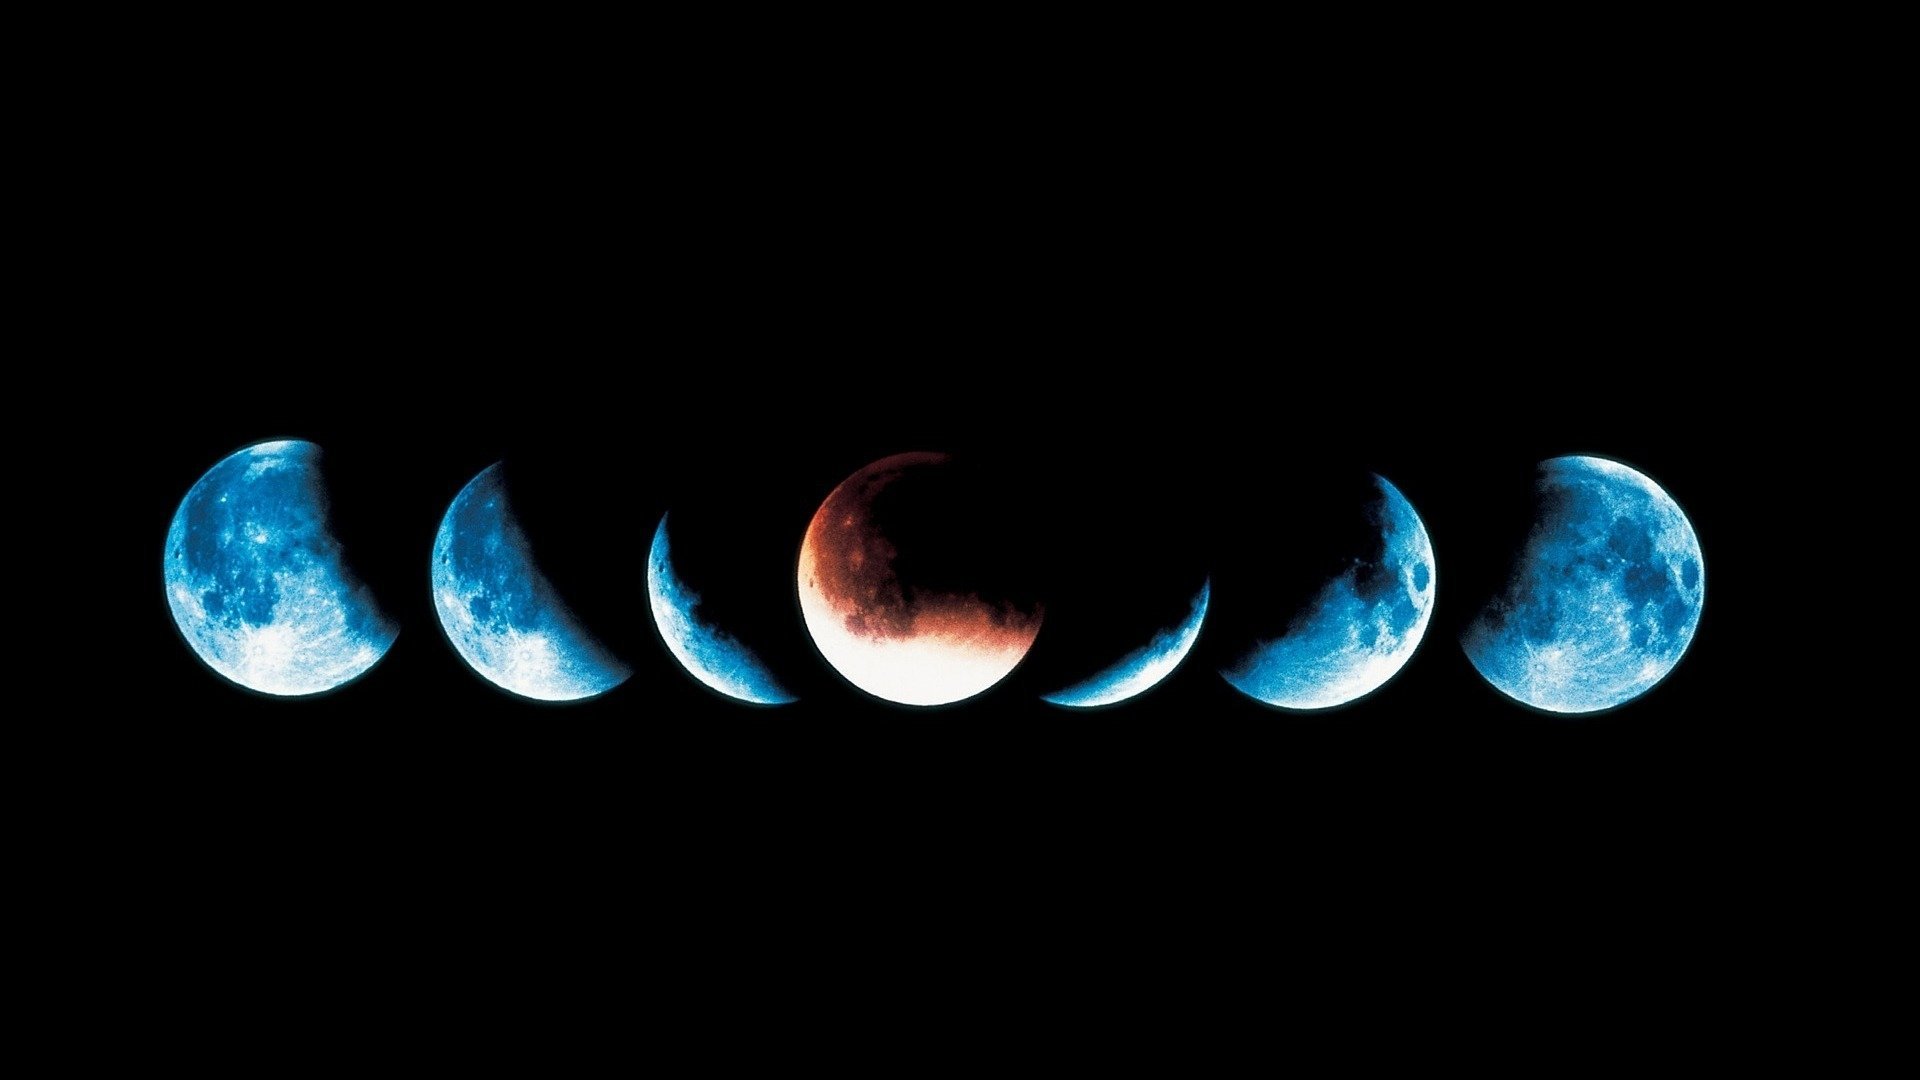 Phases of the Moon wallpaper   886068 1920x1080